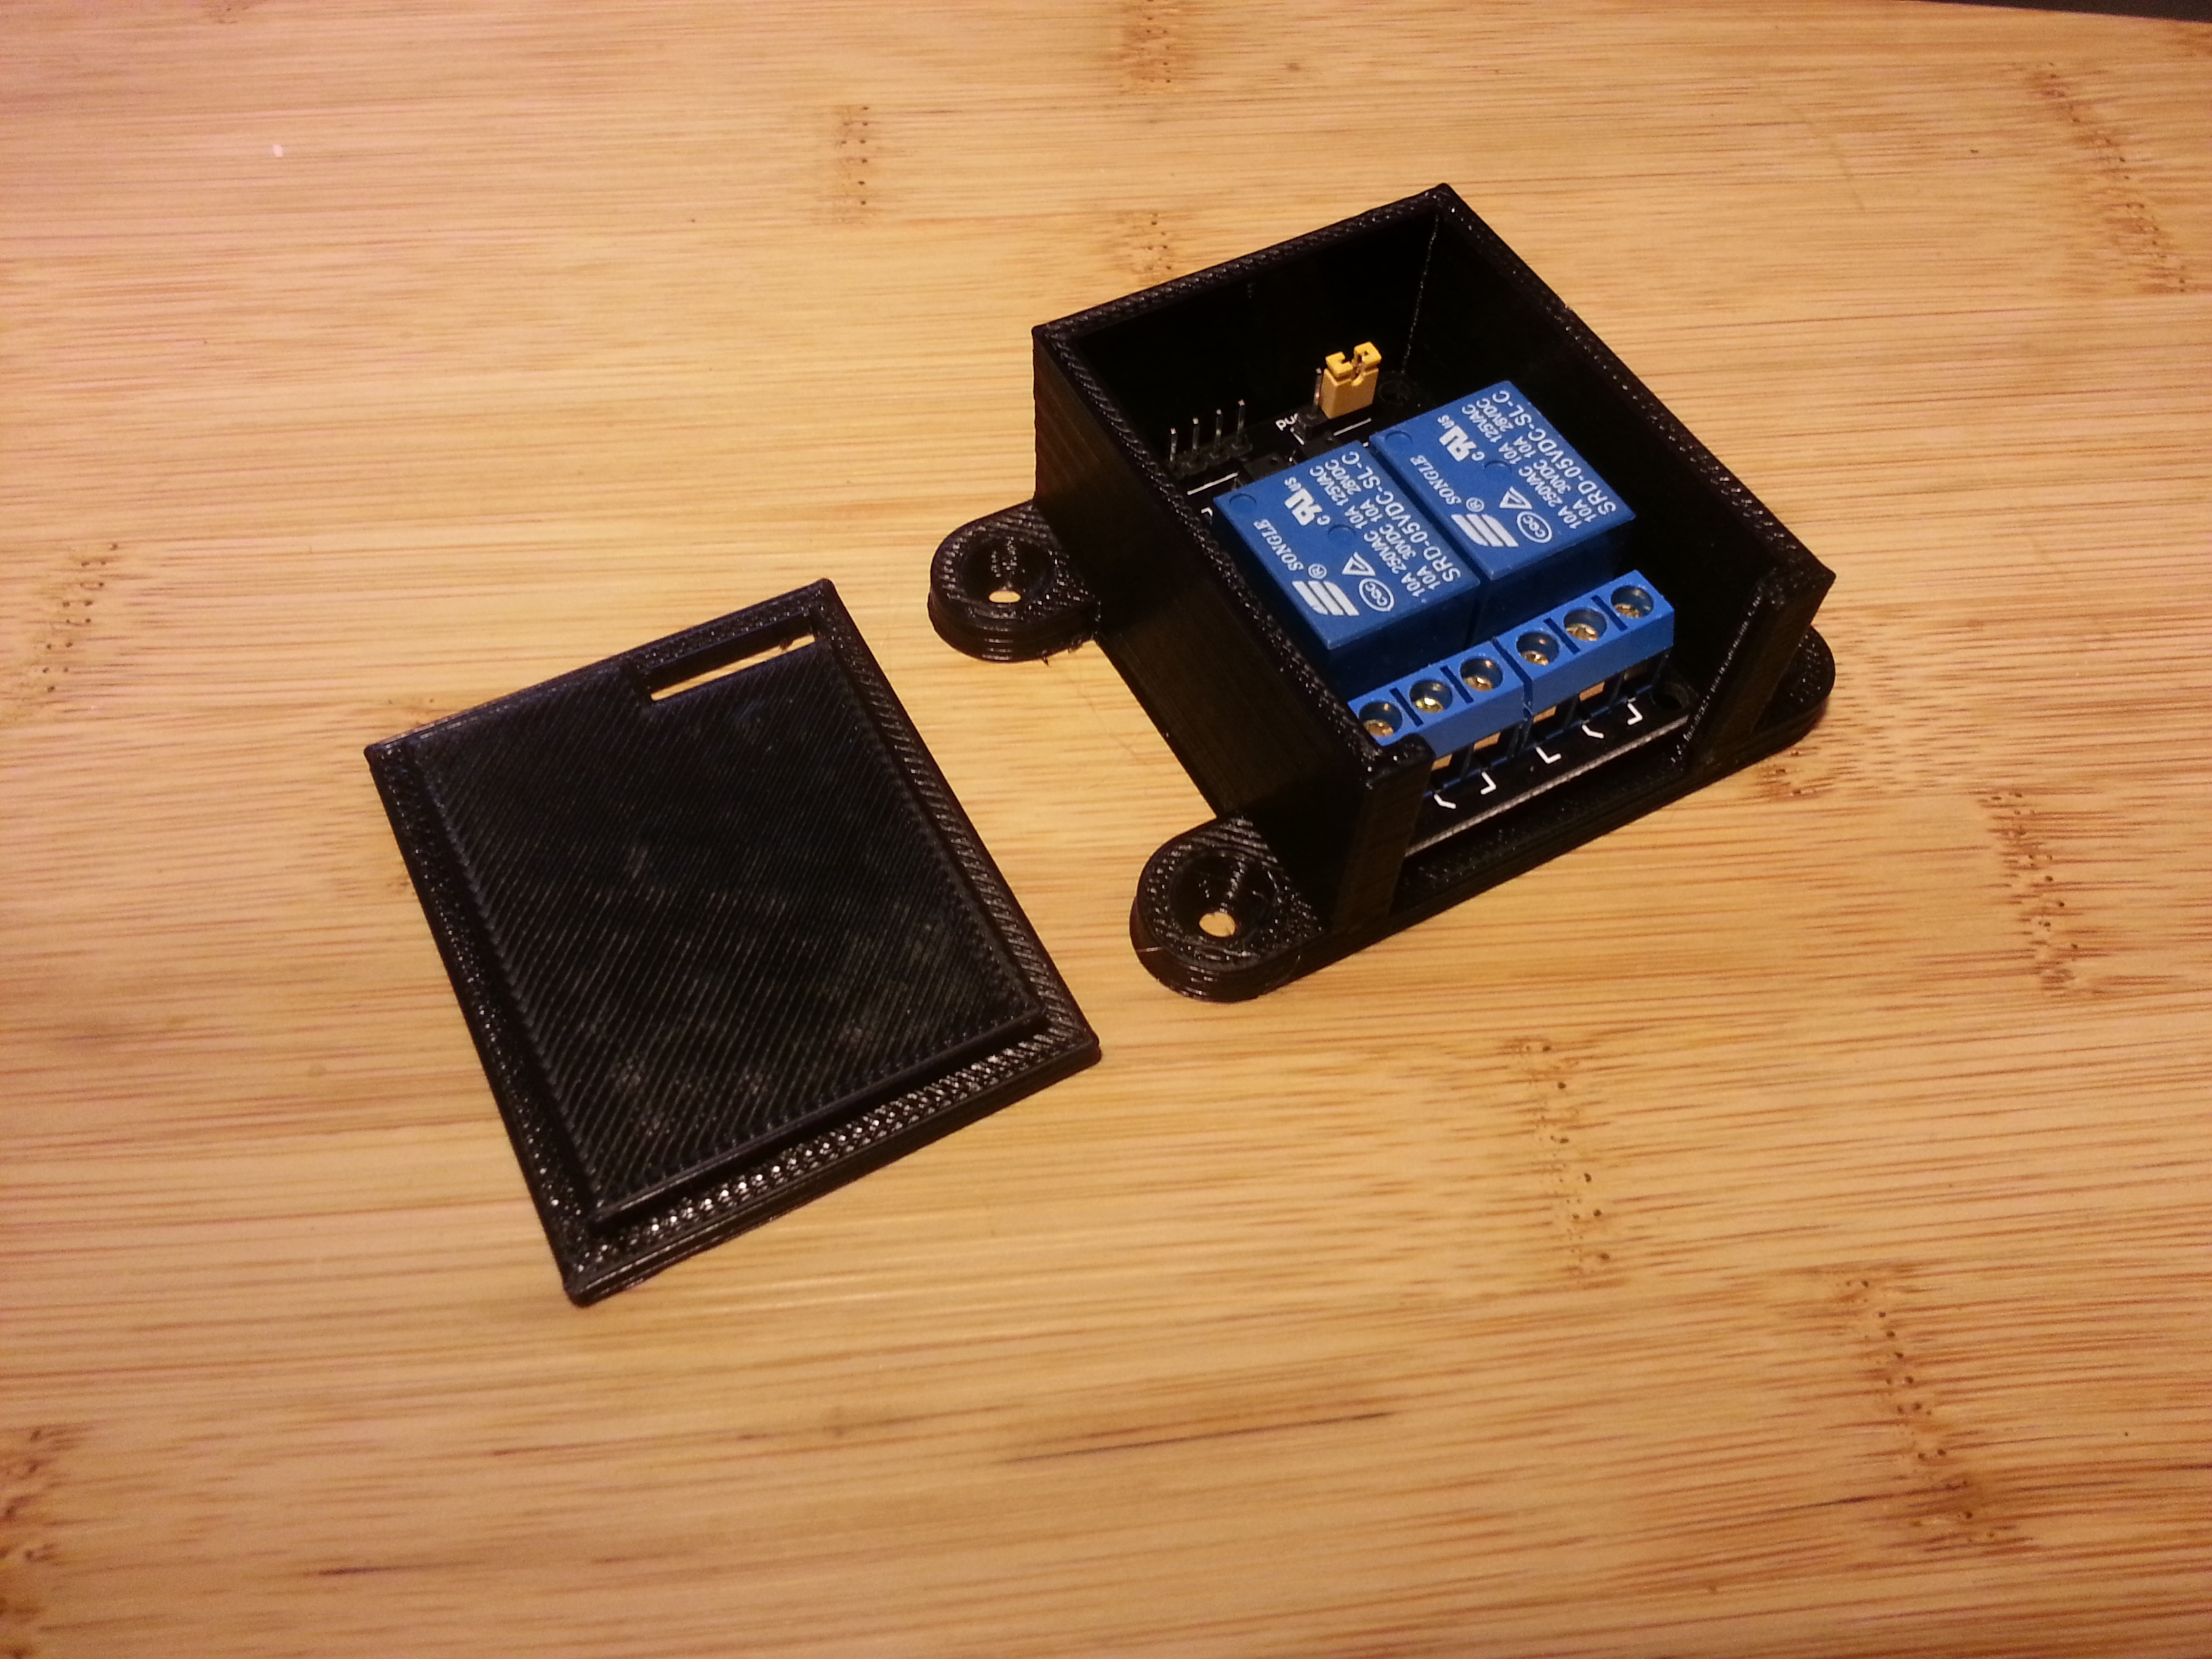 Mountable Case With Lid For 2 Channel Relay Board By Northernlayers Jul 29 2015 View Original